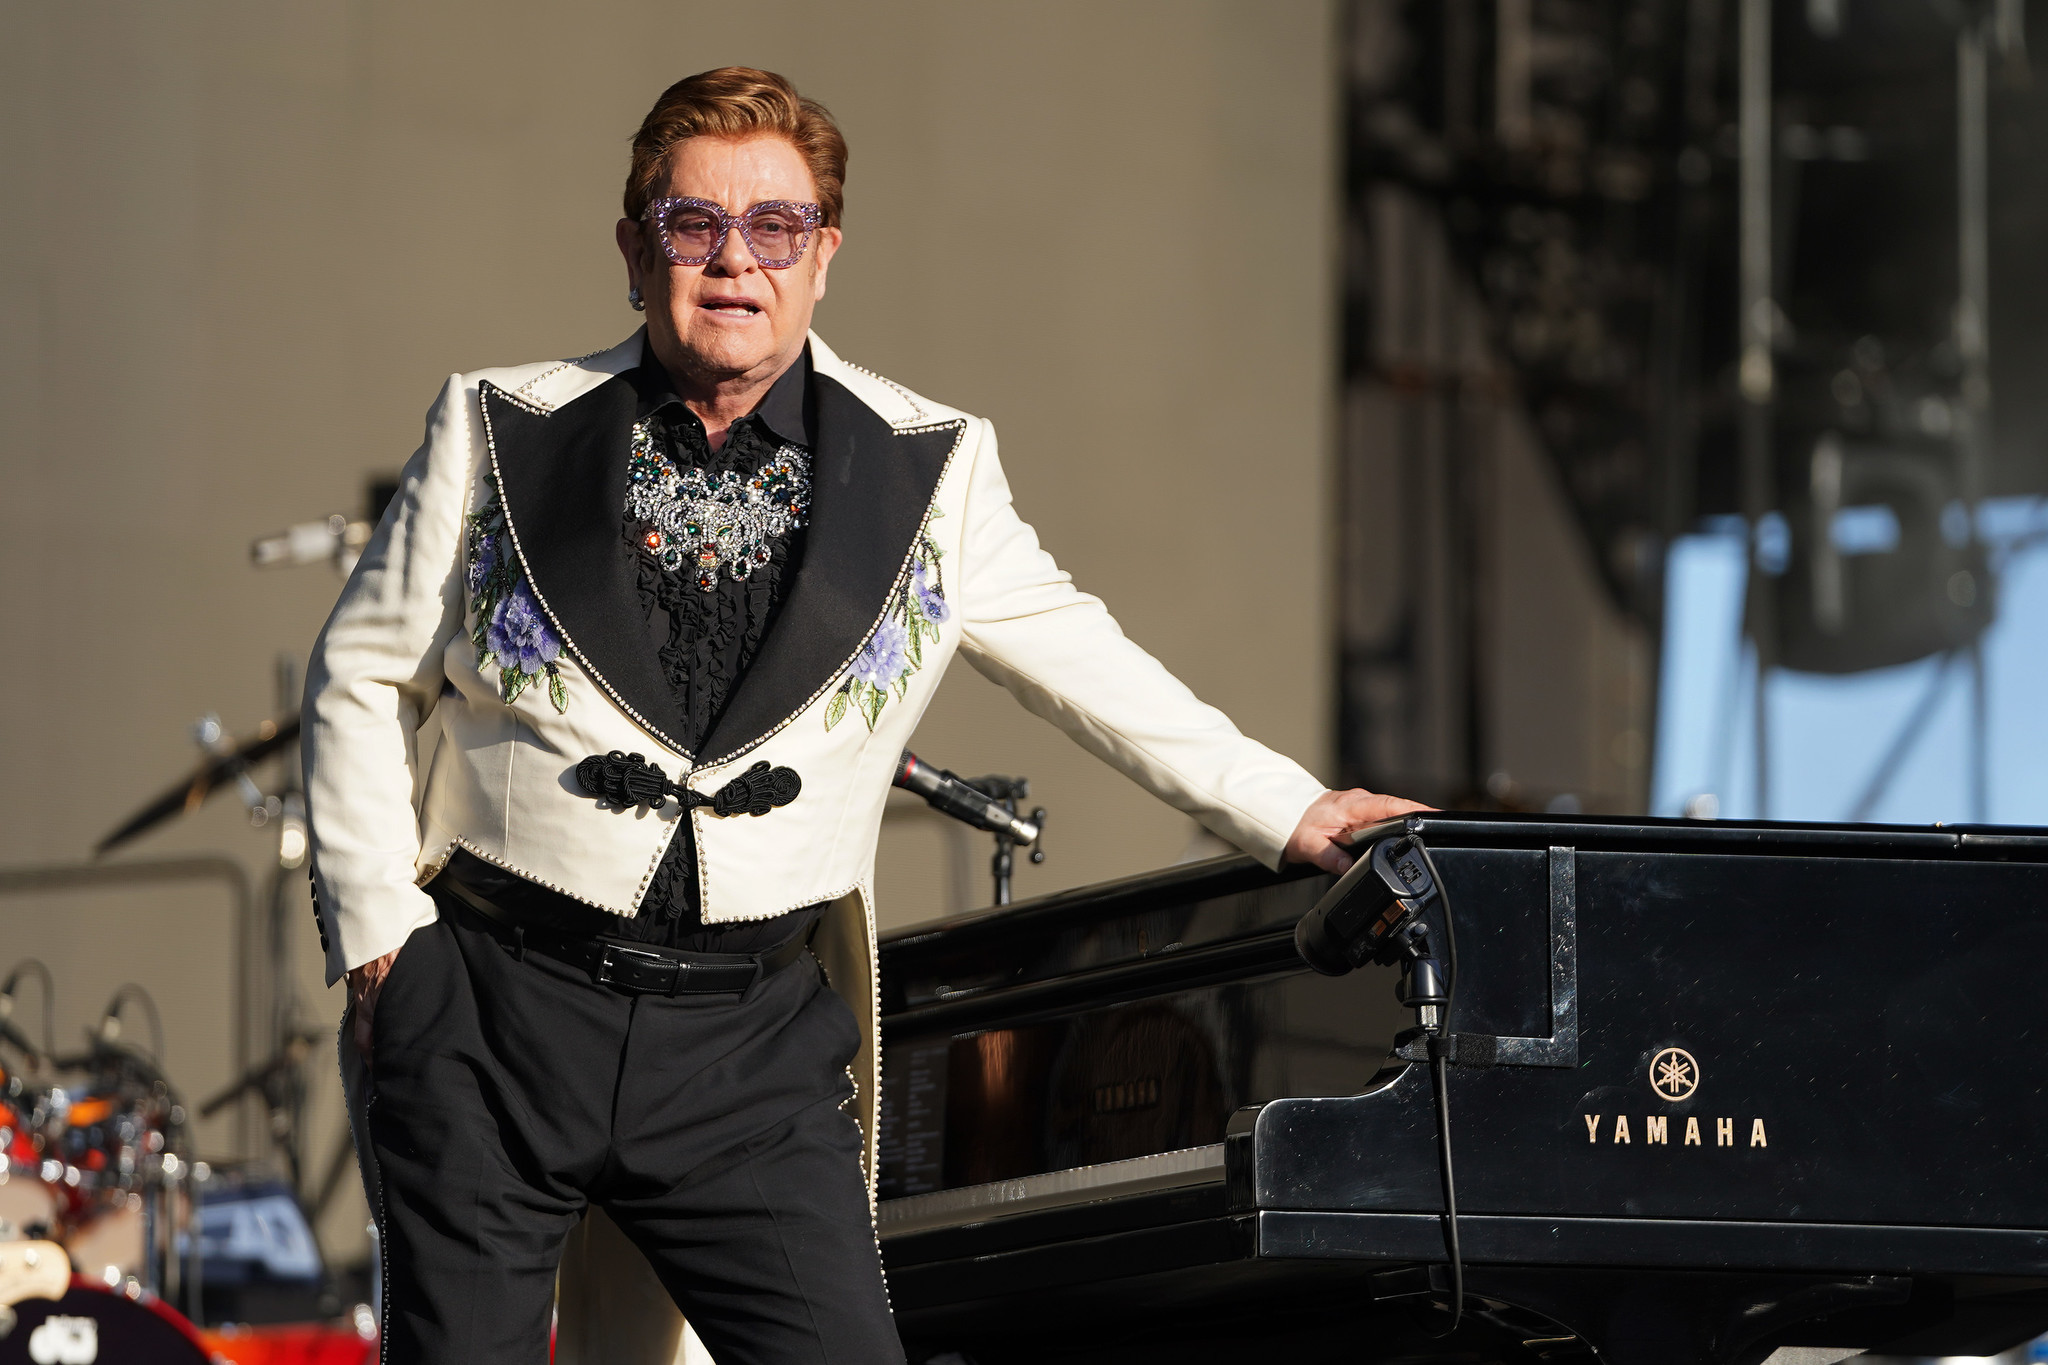 How to catch Sunday's iHeart Living Room concert hosted by Elton John